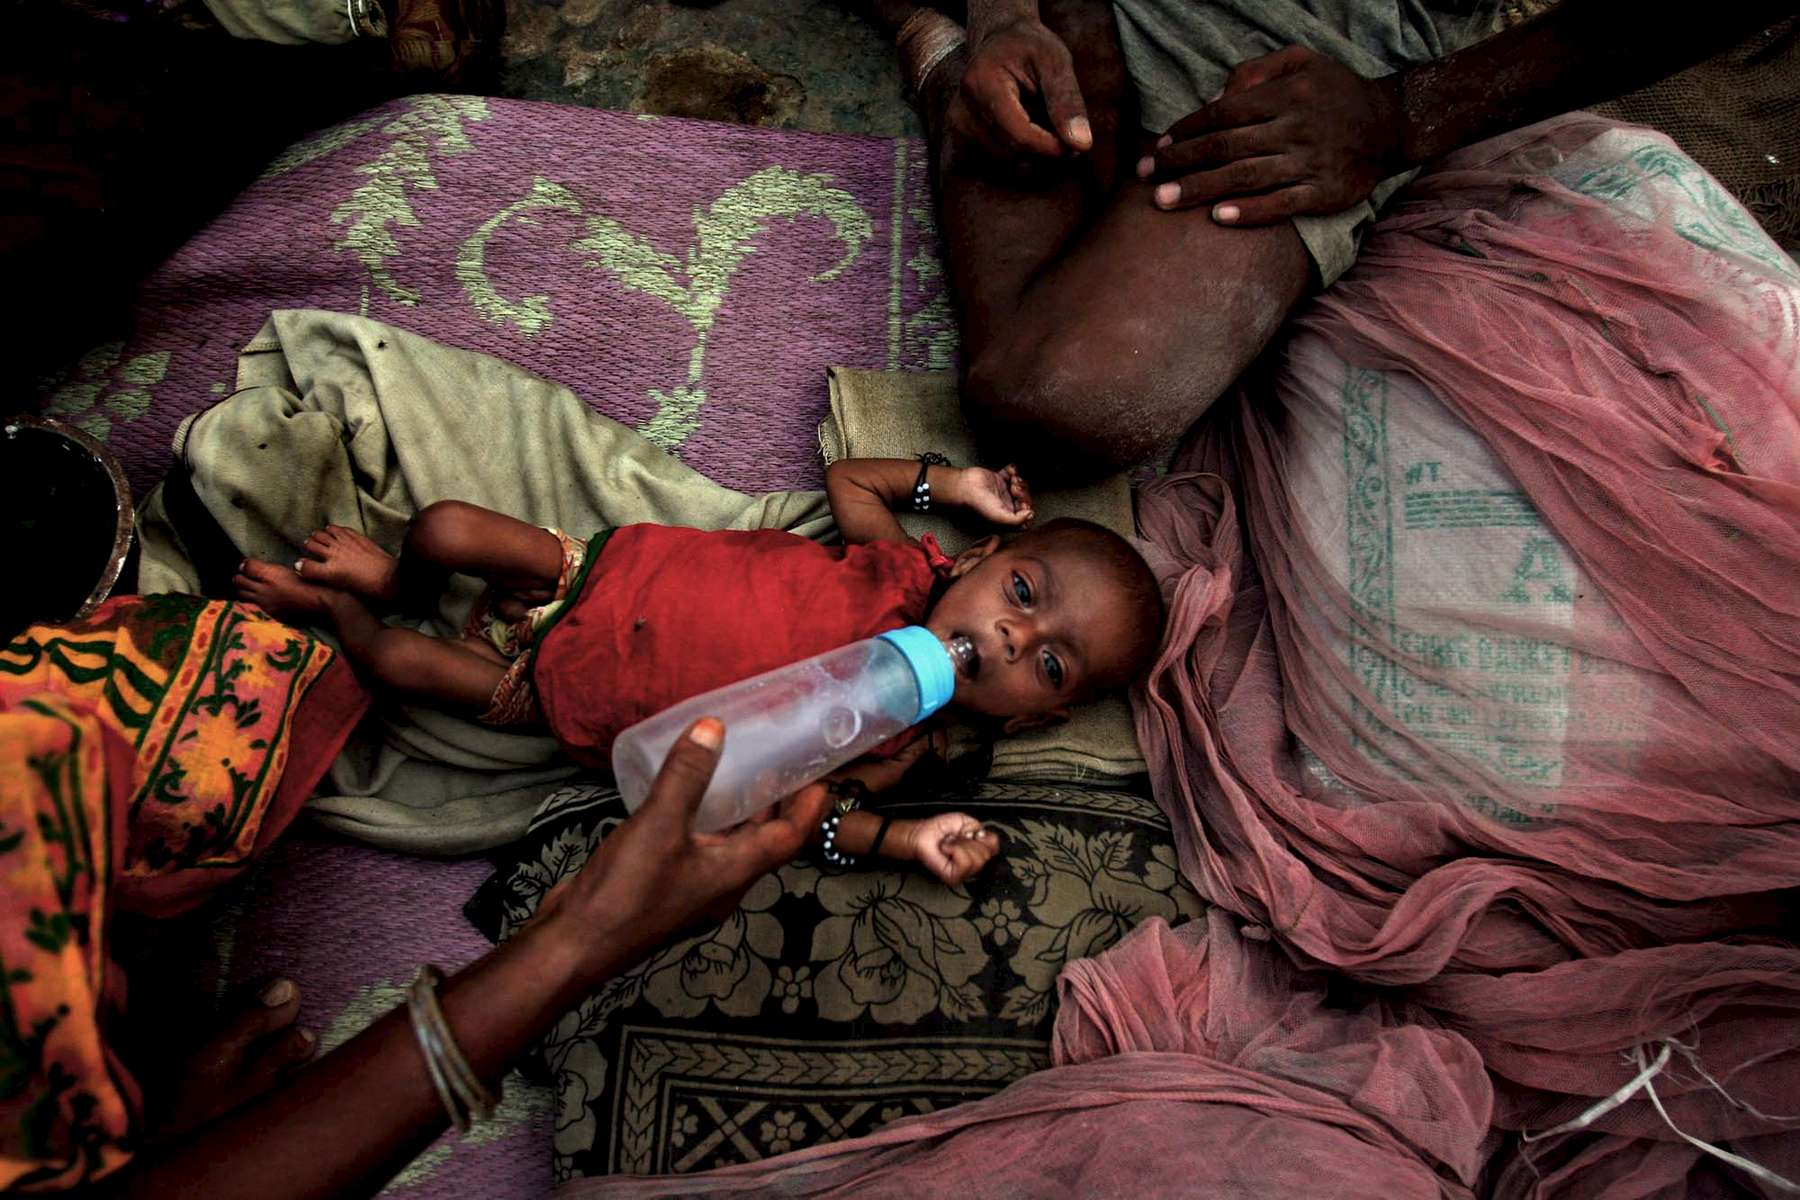 A mother feeds her newborn baby in Yamuna Pushta a diluted milk solution one afternoon. Babies and young children are often undernourished due to the lack of access to proper nutrition in the community.